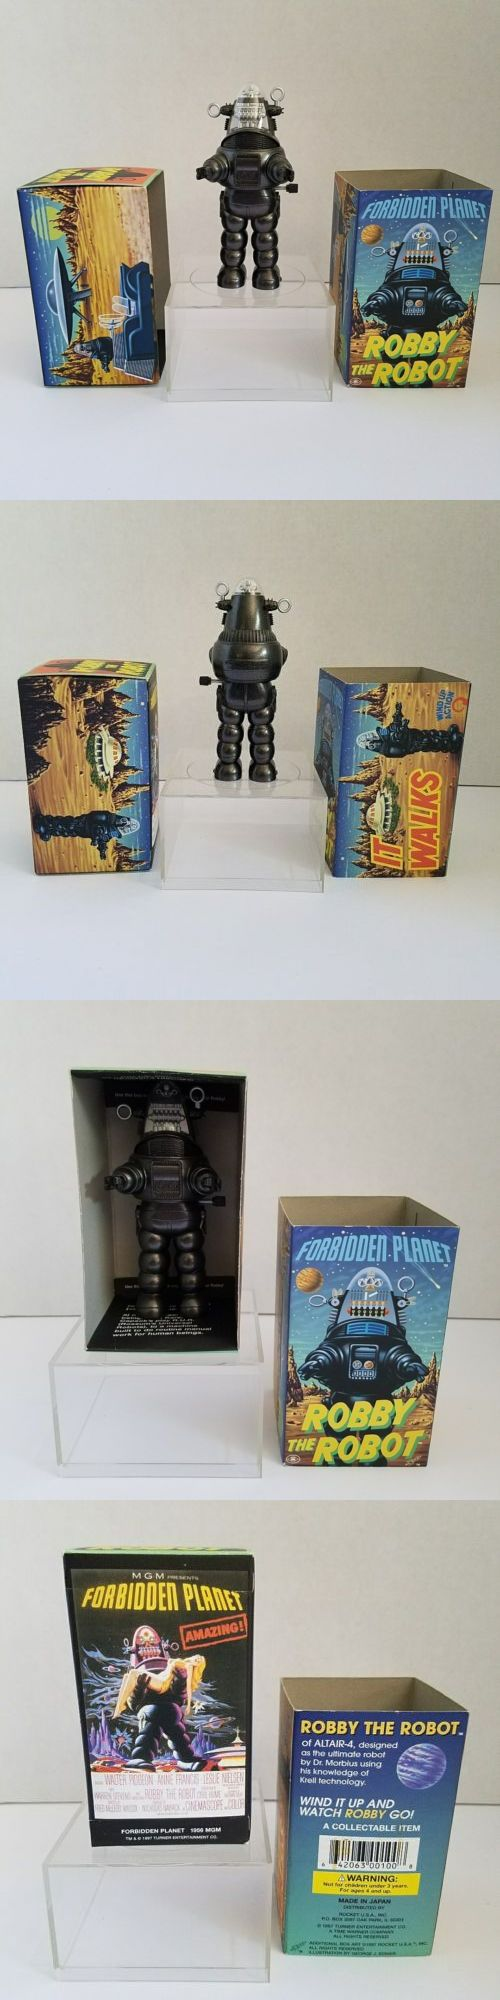 1970-Now 19198: Forbidden Planet Robby The Robot Wind Up With Box 1997 Rocket Usa -> BUY IT NOW ONLY: $45 on eBay!